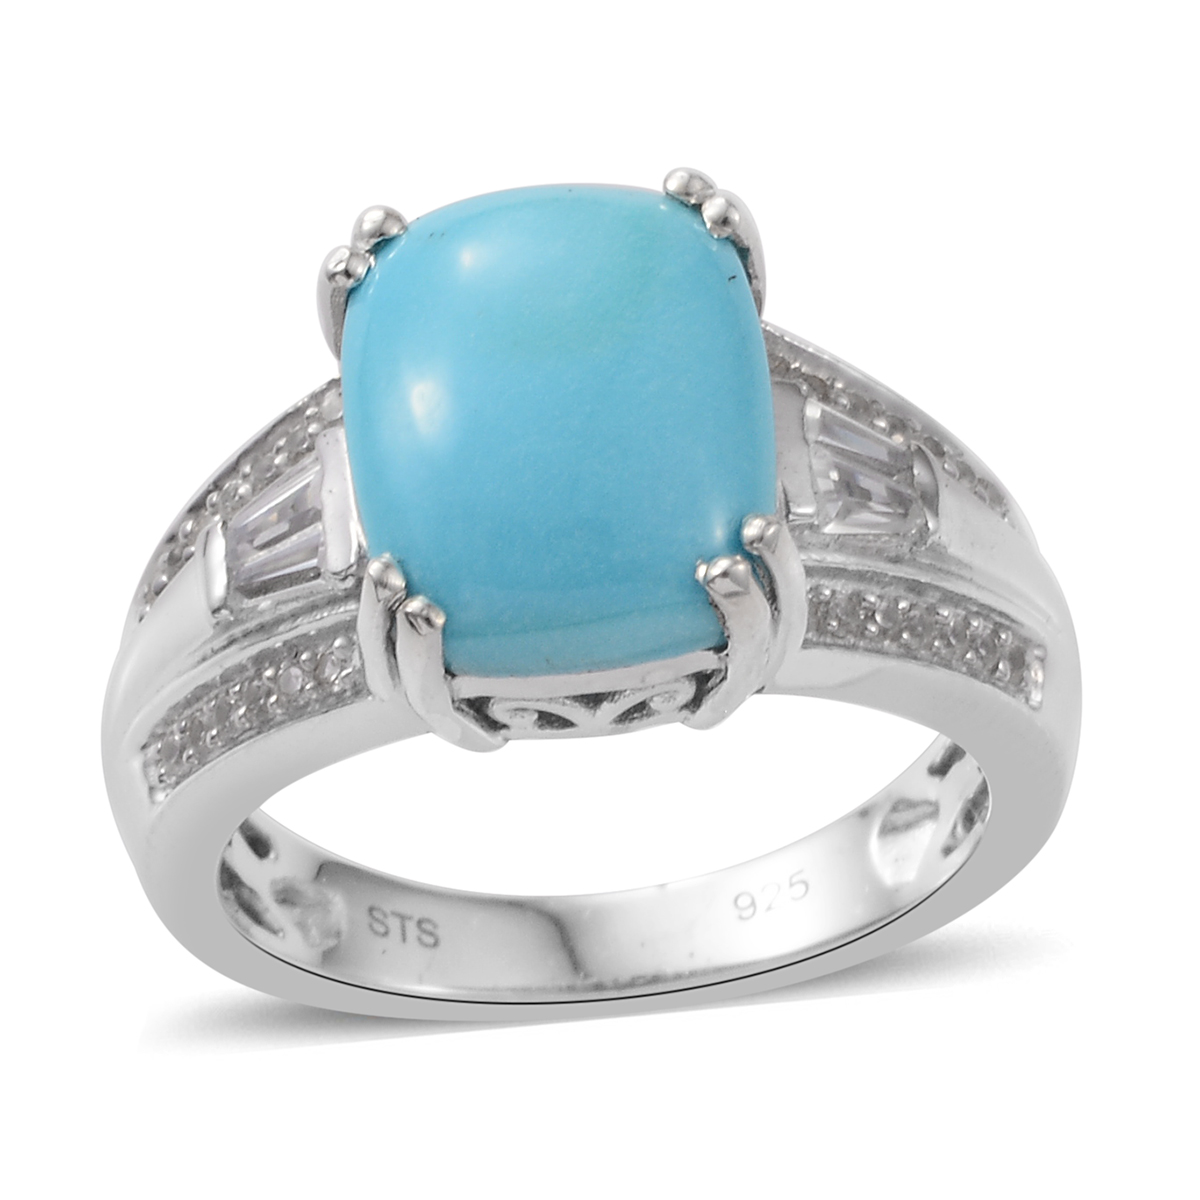 4b60bfe0dae96e Details about Promise Ring Silver Platinum Plated Sleeping Beauty Turquoise  Zircon Size 10